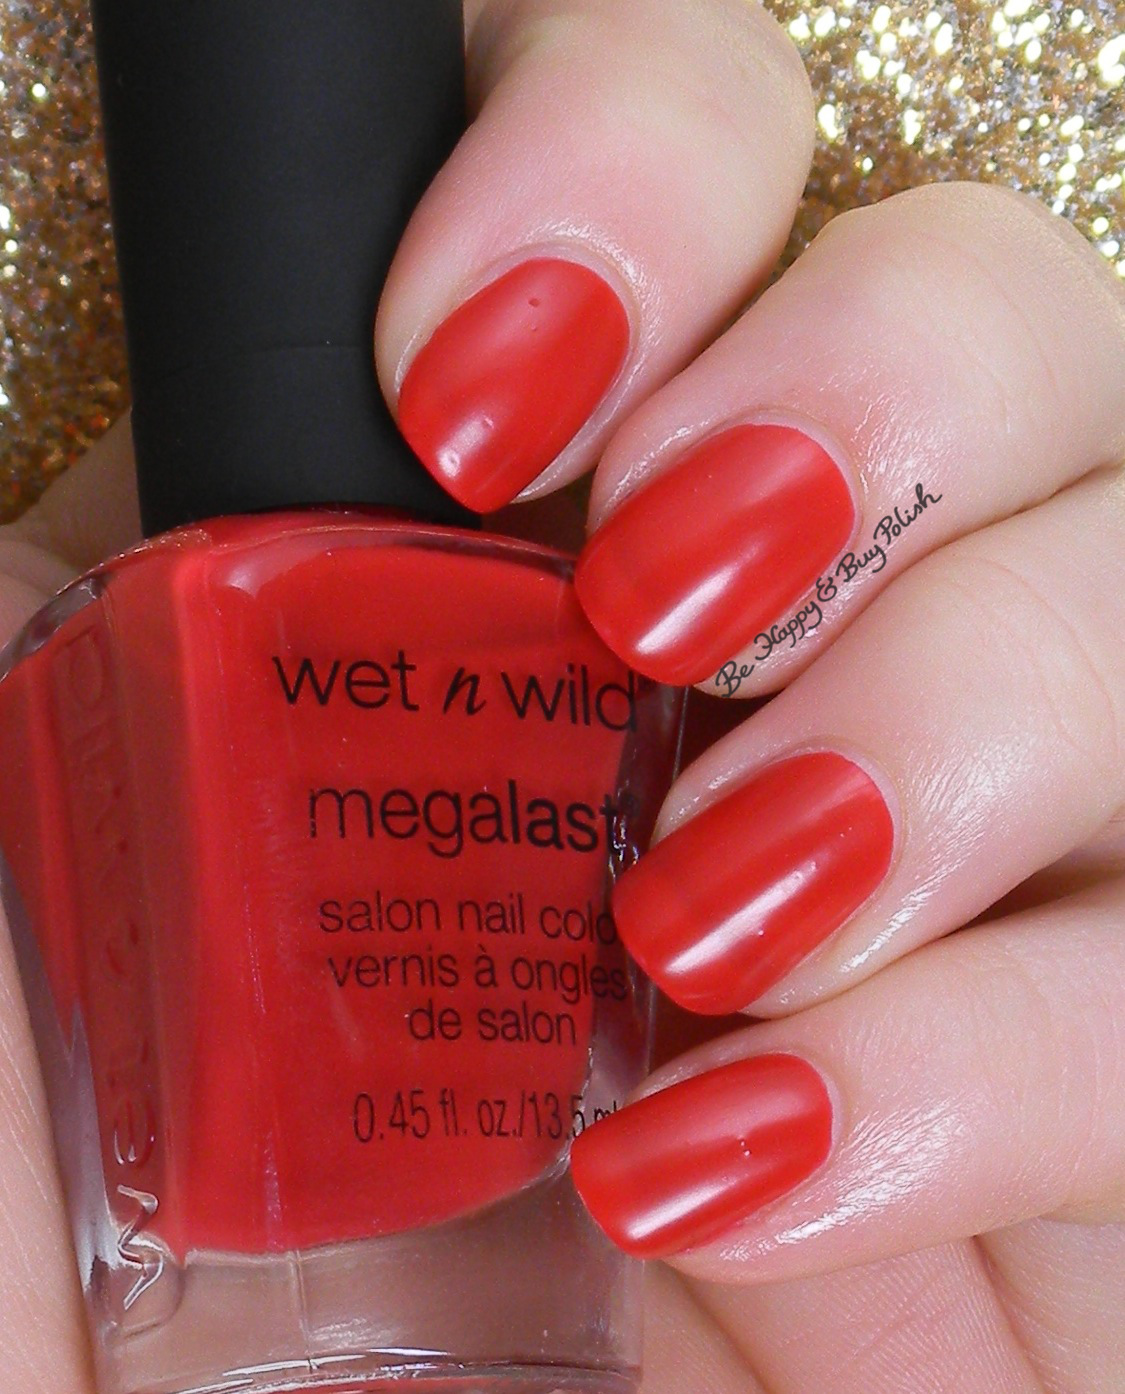 Best Bright Red Nail Polish: Wet N Wild Fall 2014 Limited Edition Matte Nail Polishes